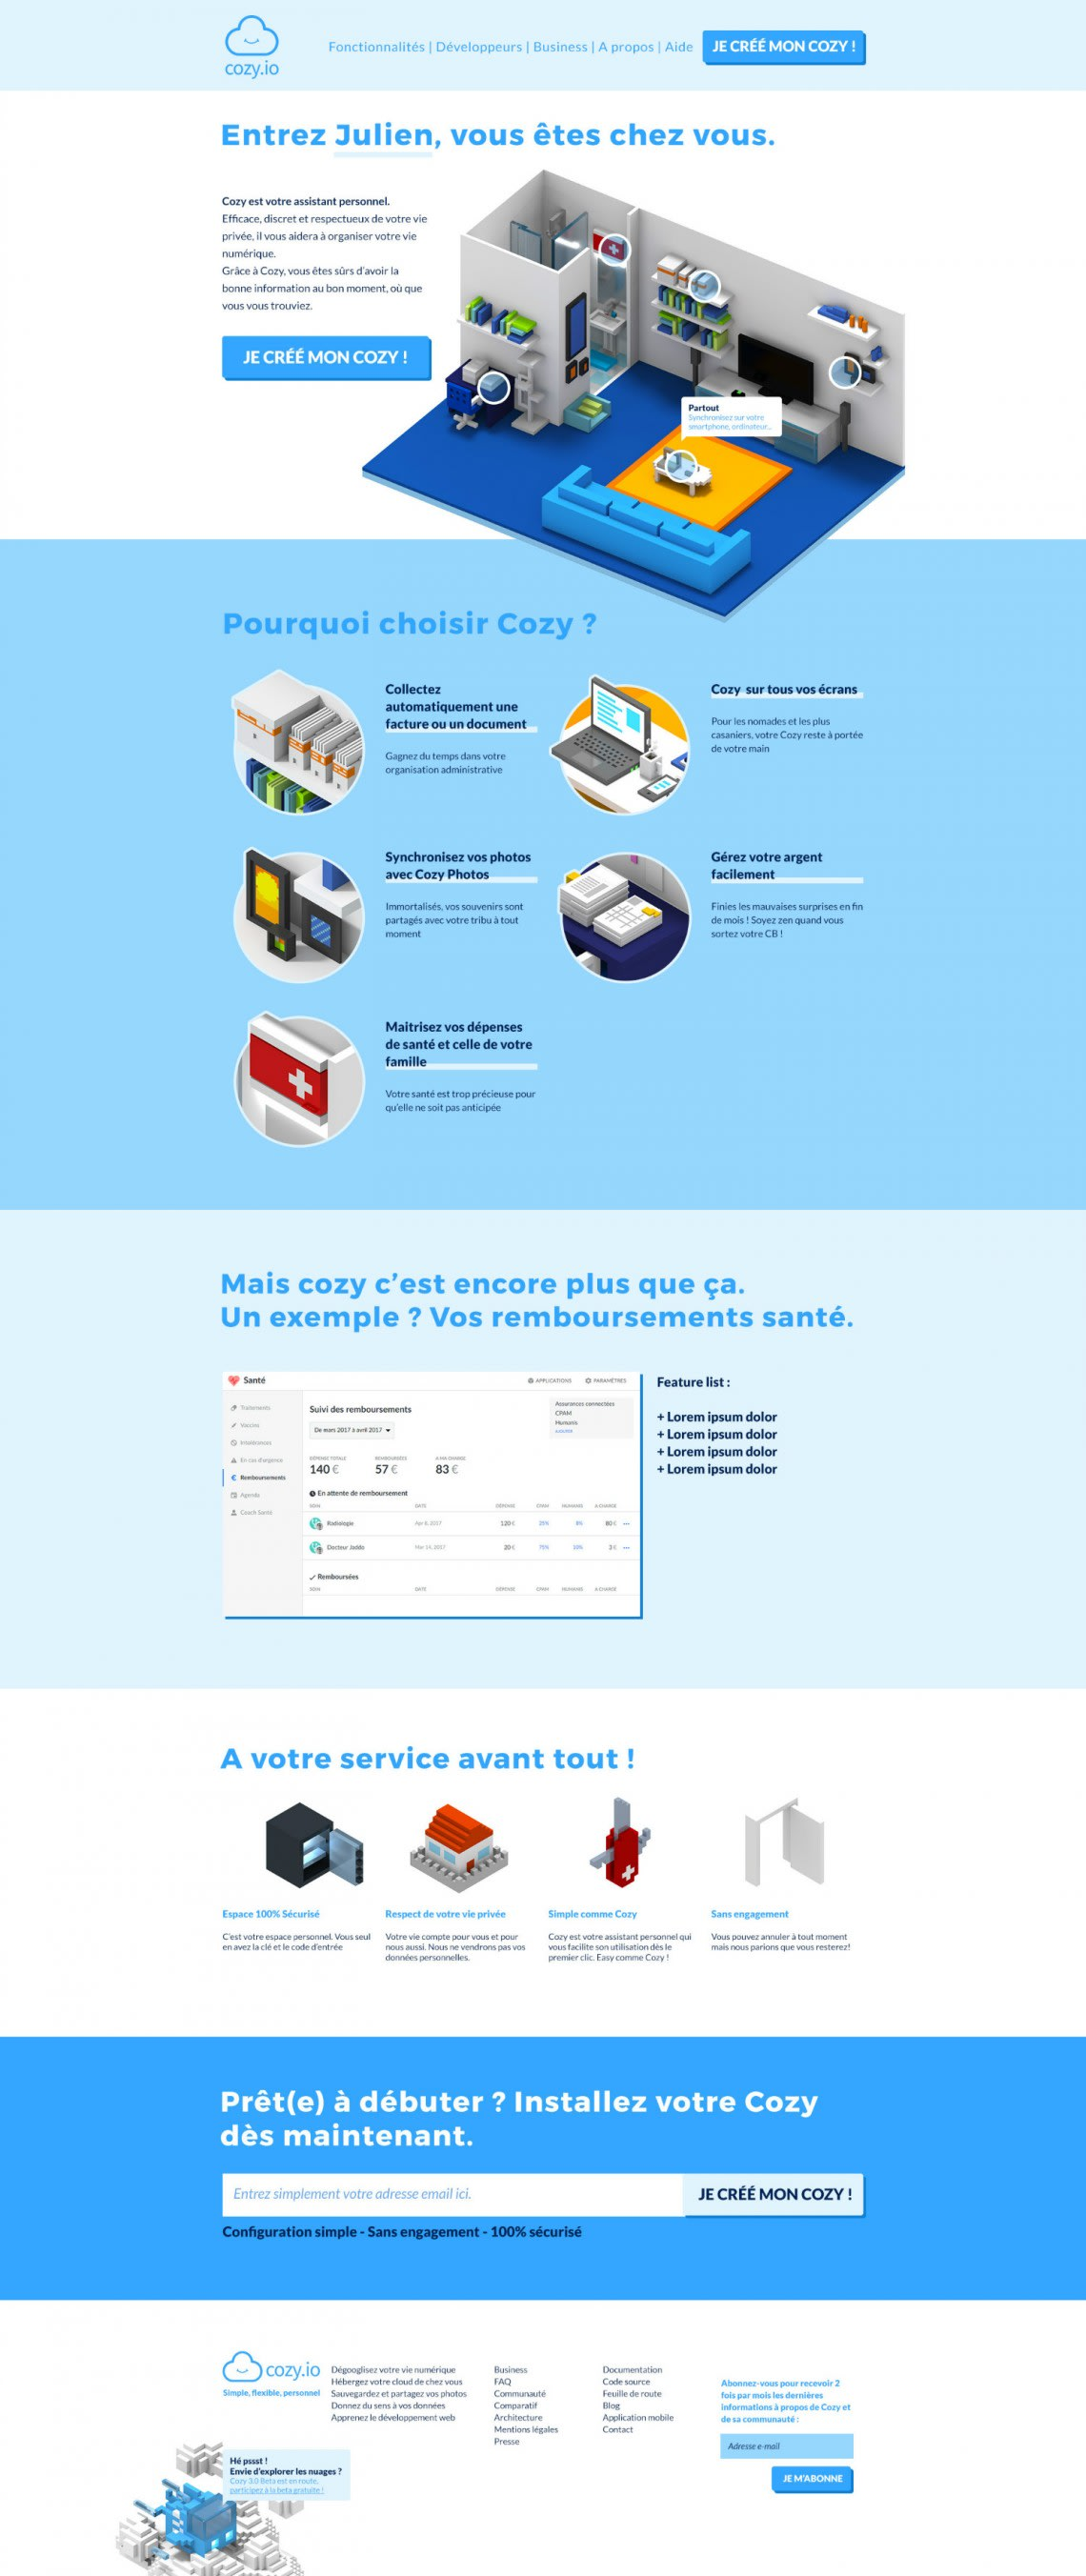 Site internet et emailing Cozy Cloud Conception,Direction Artistique,Voxel,3D,Illustration,Accompagnement,Webdesign,Social Media